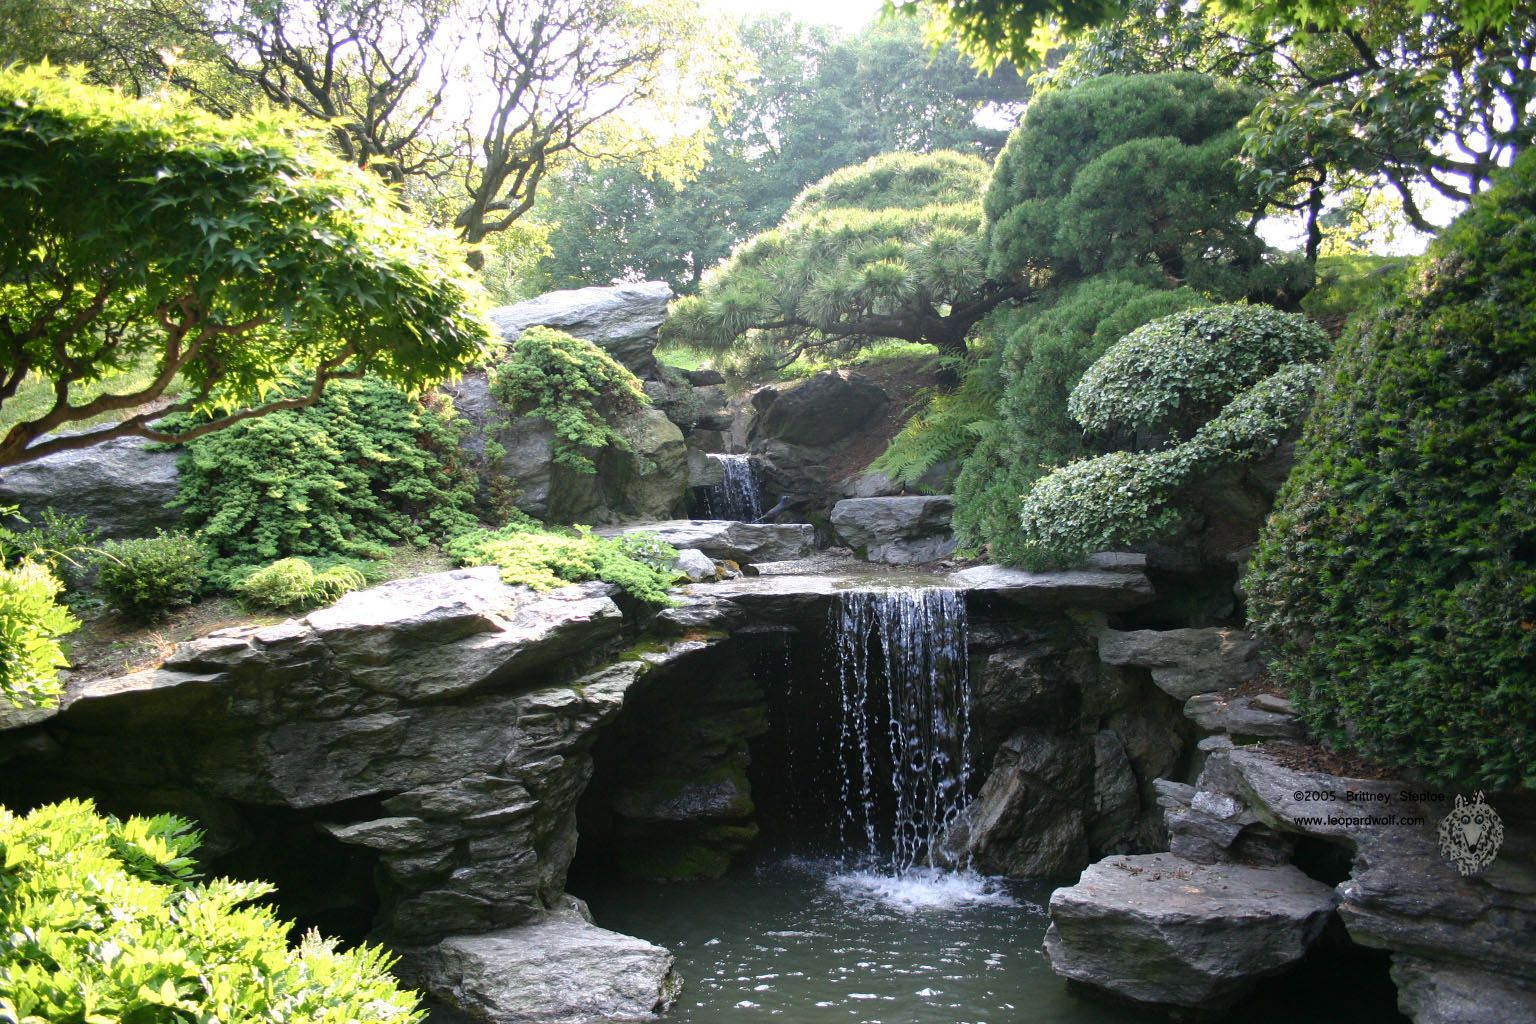 Wallpaper Japanischer Garten Small Water Garden Designs Japanese Garden Wallpaper 150x150